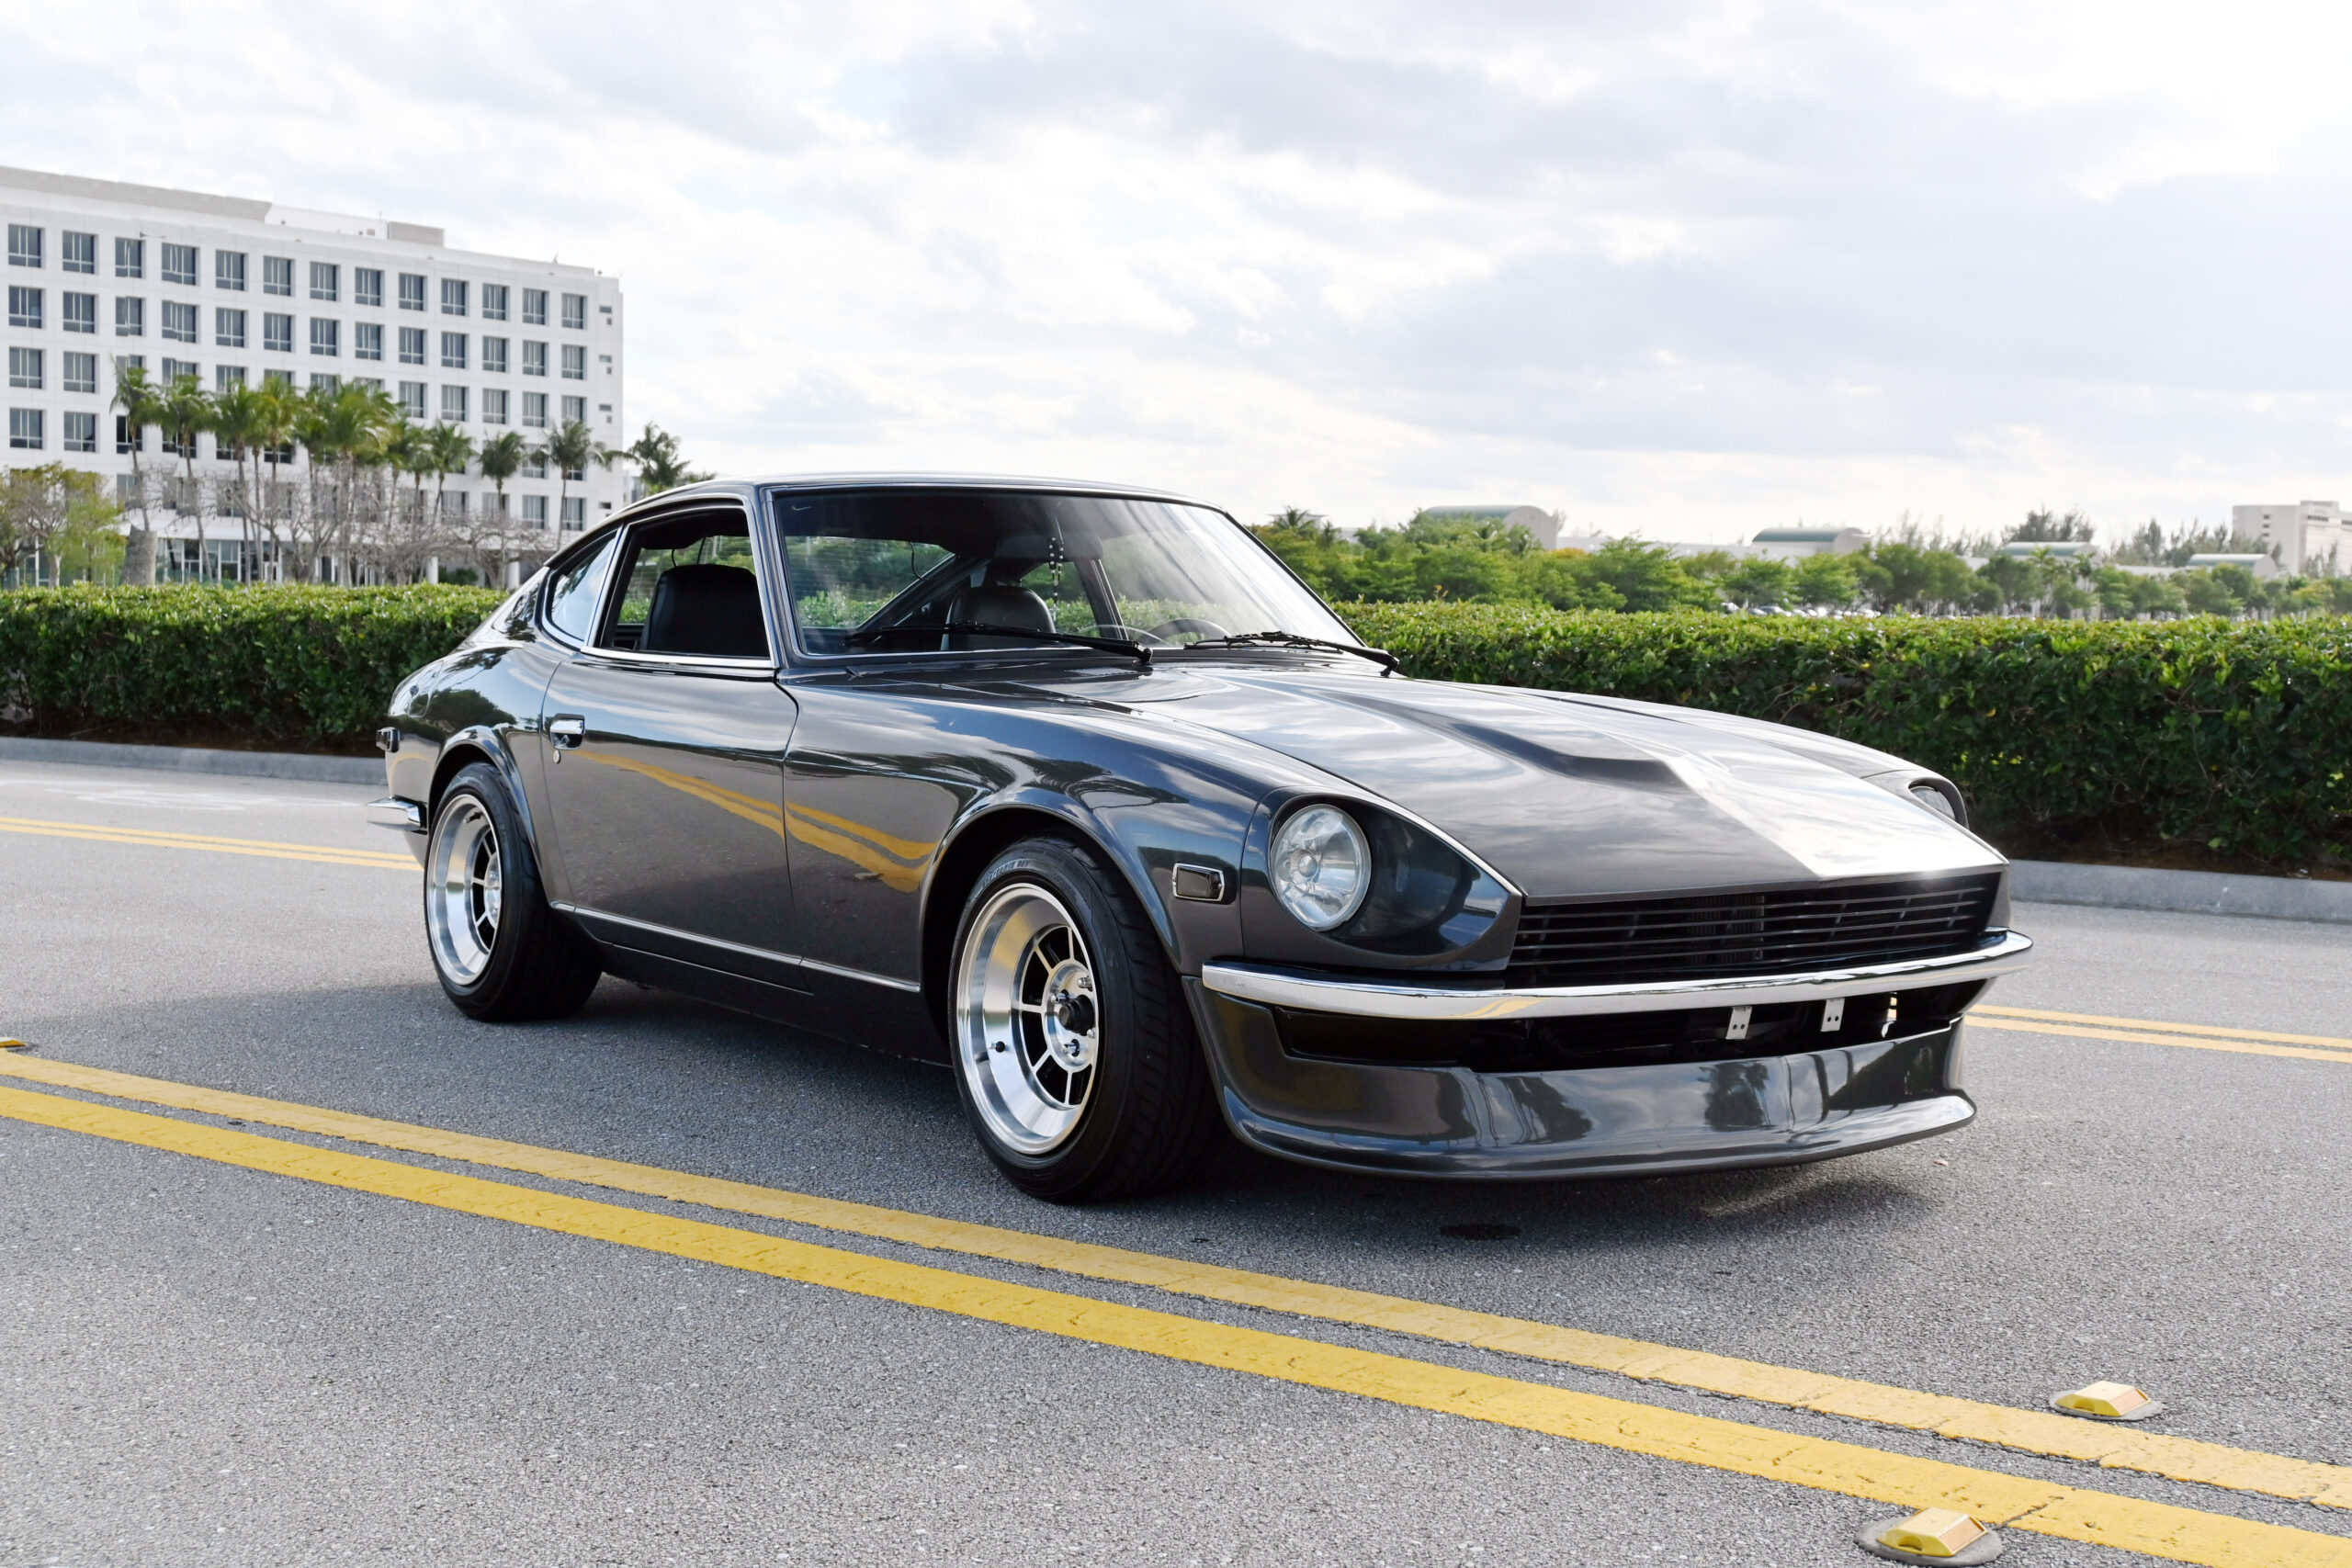 1974 Datsun 260Z Show Car look, California car, fresh paint, Weber 44s, Headers, lots of updates